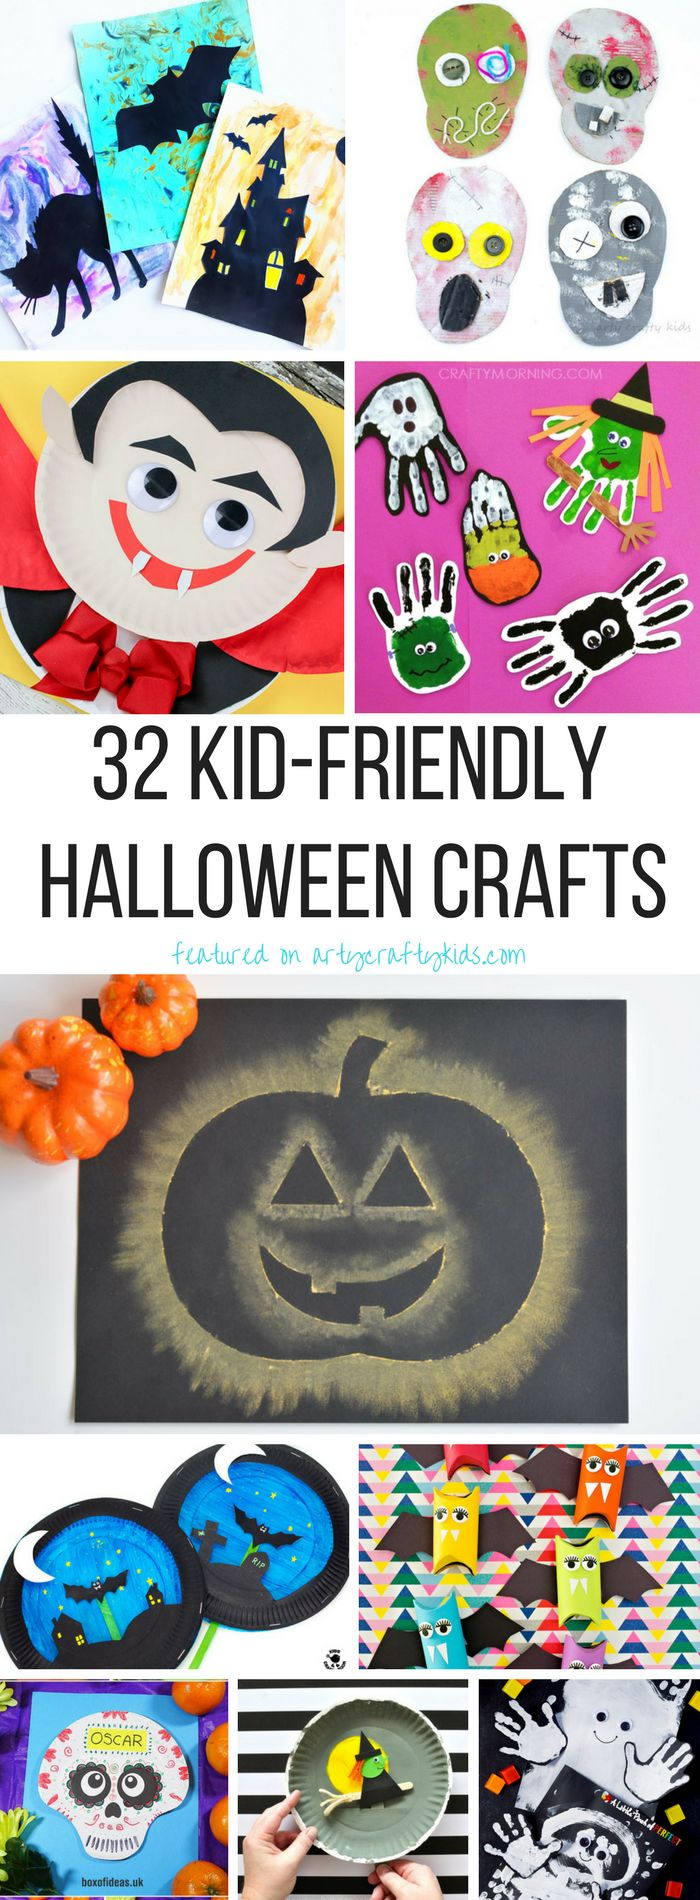 Kid-Friendly Halloween Crafts